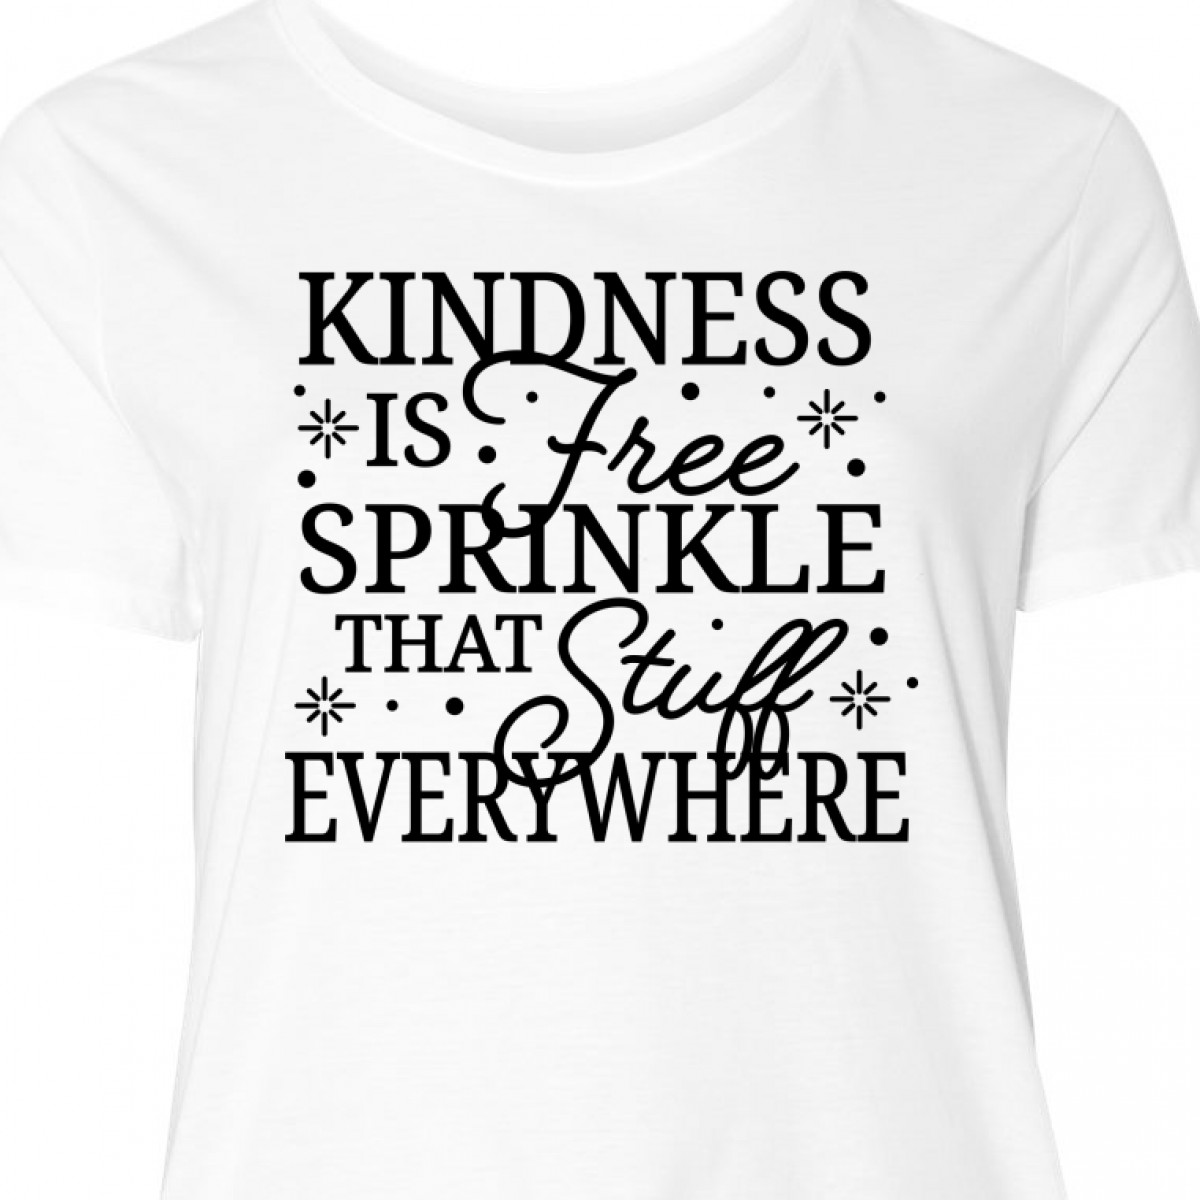 Details about Inktastic Kindness Is Free Sprinkle That Stuff Women\'s Plus  Size T-Shirt Quotes